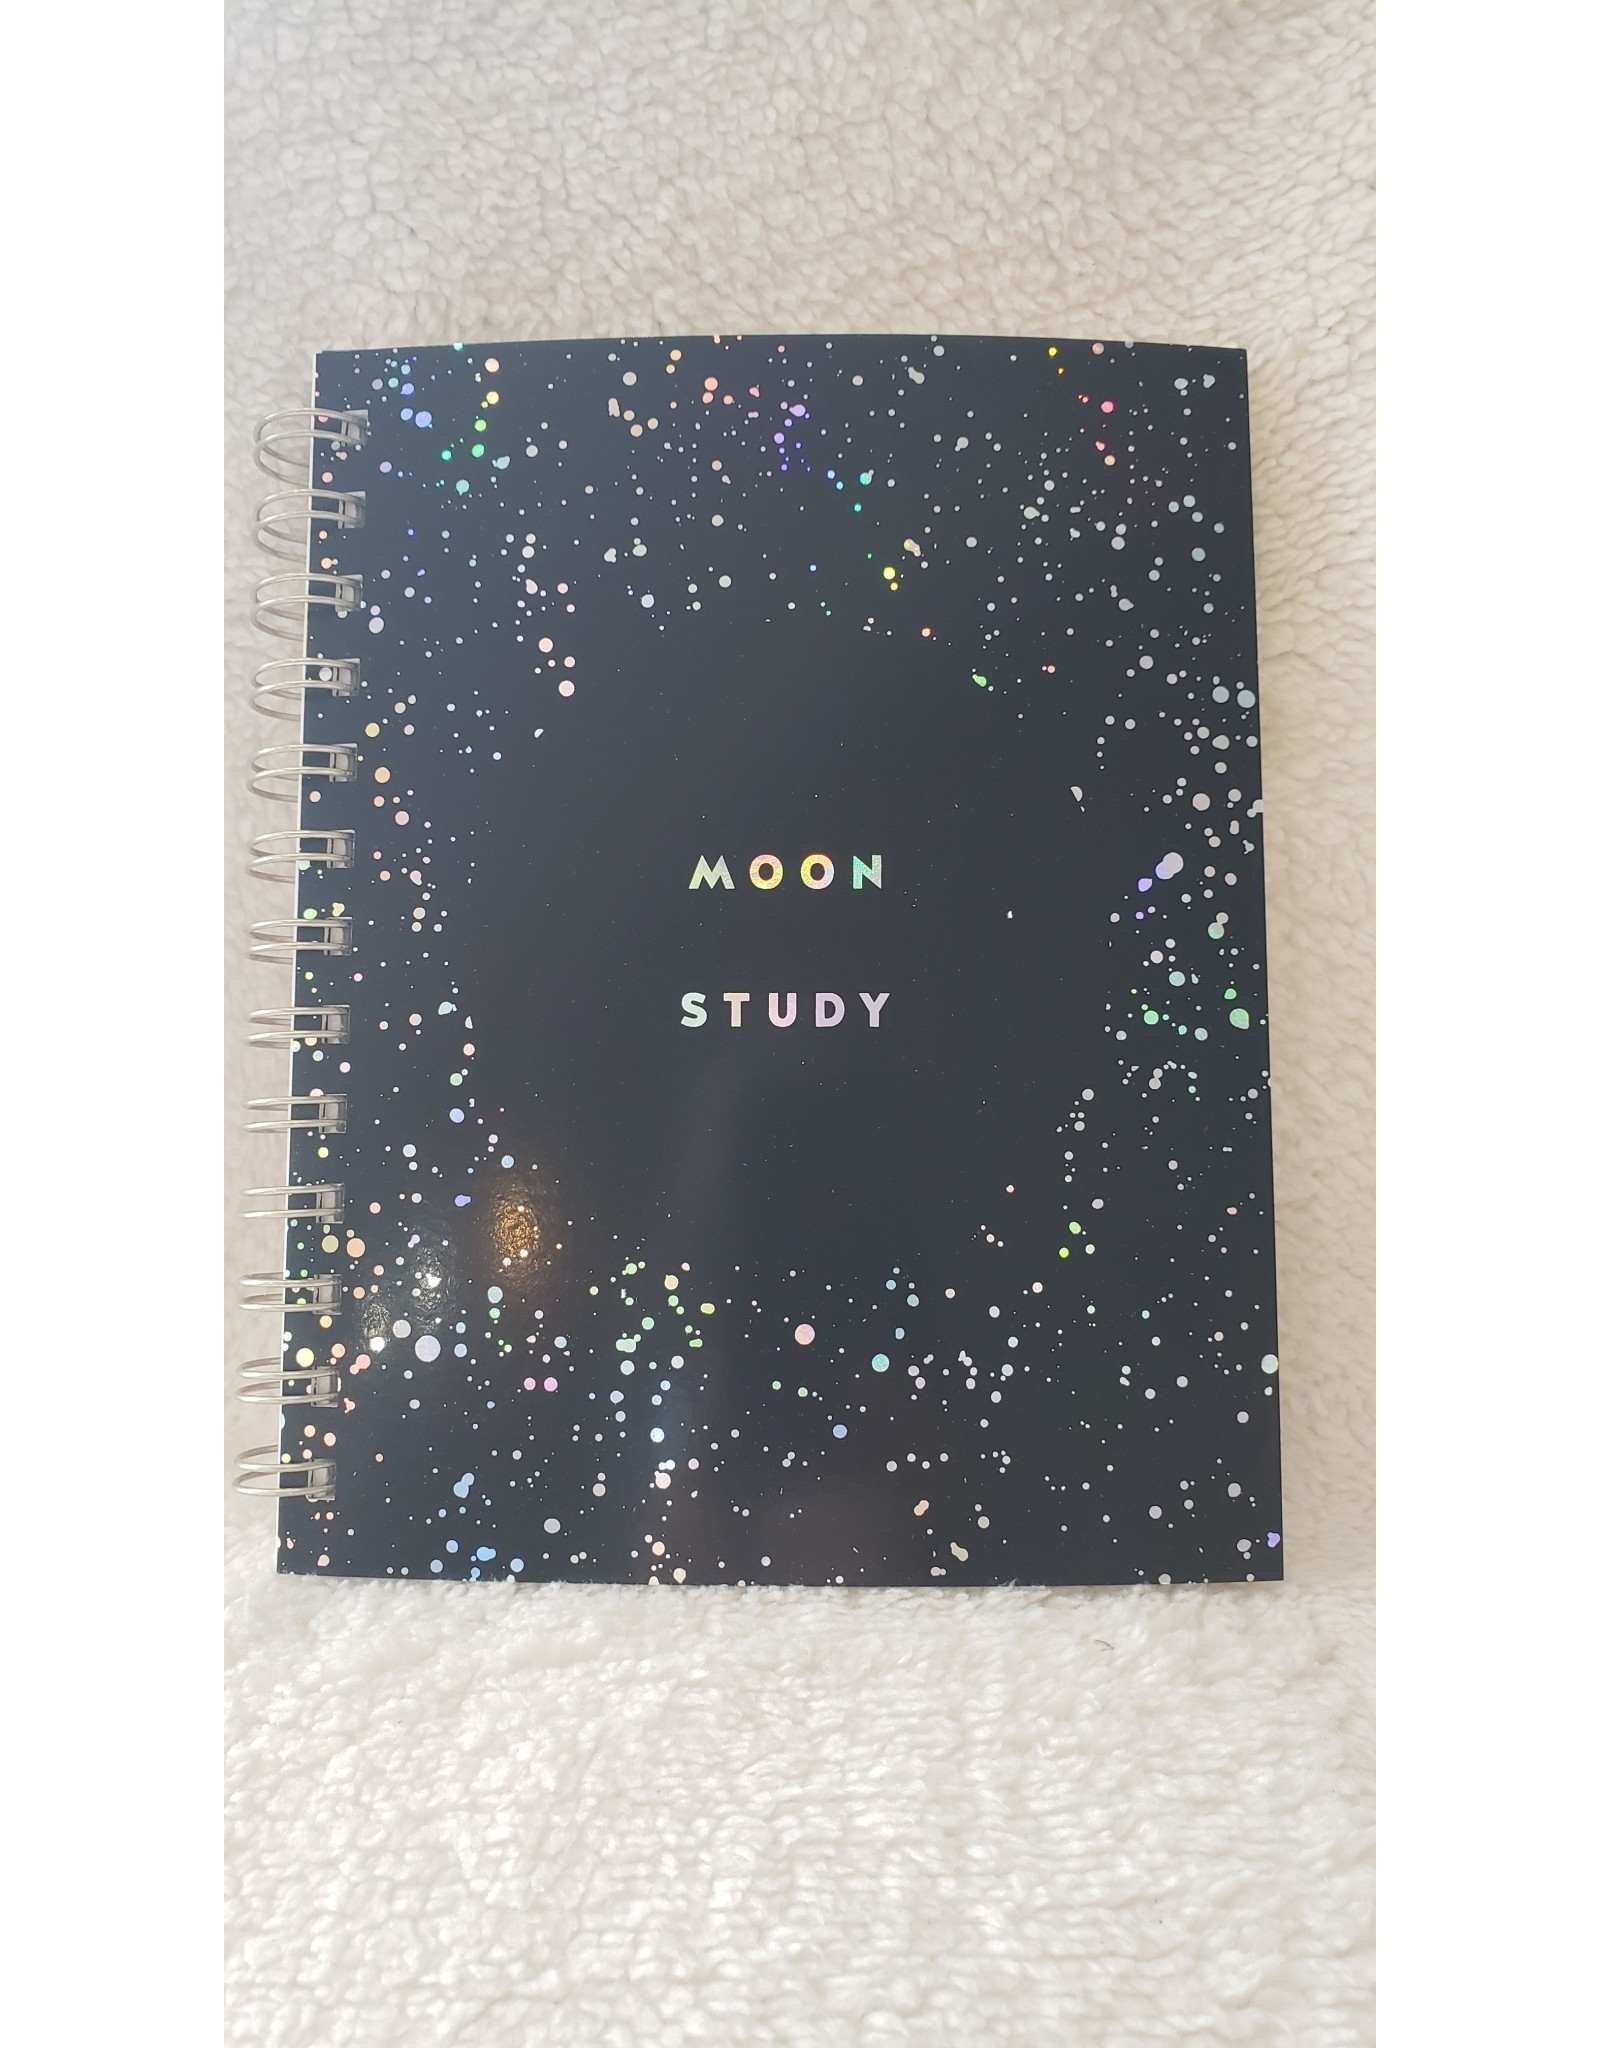 Moon Study Reflection Journal